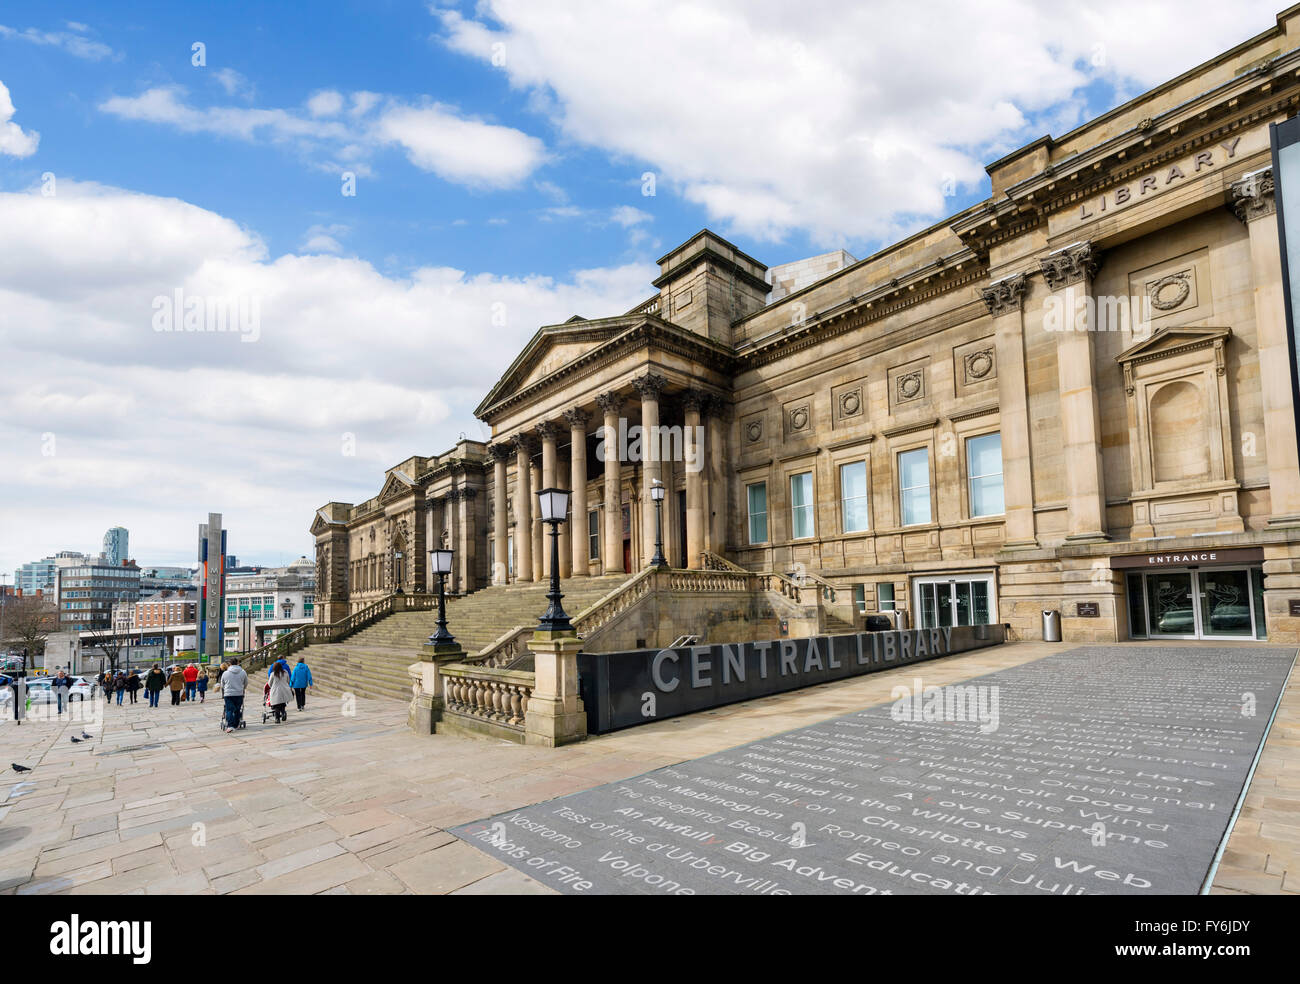 The Central Library and World Museum, William Brown Street, Liverpool, England, UK Stock Photo